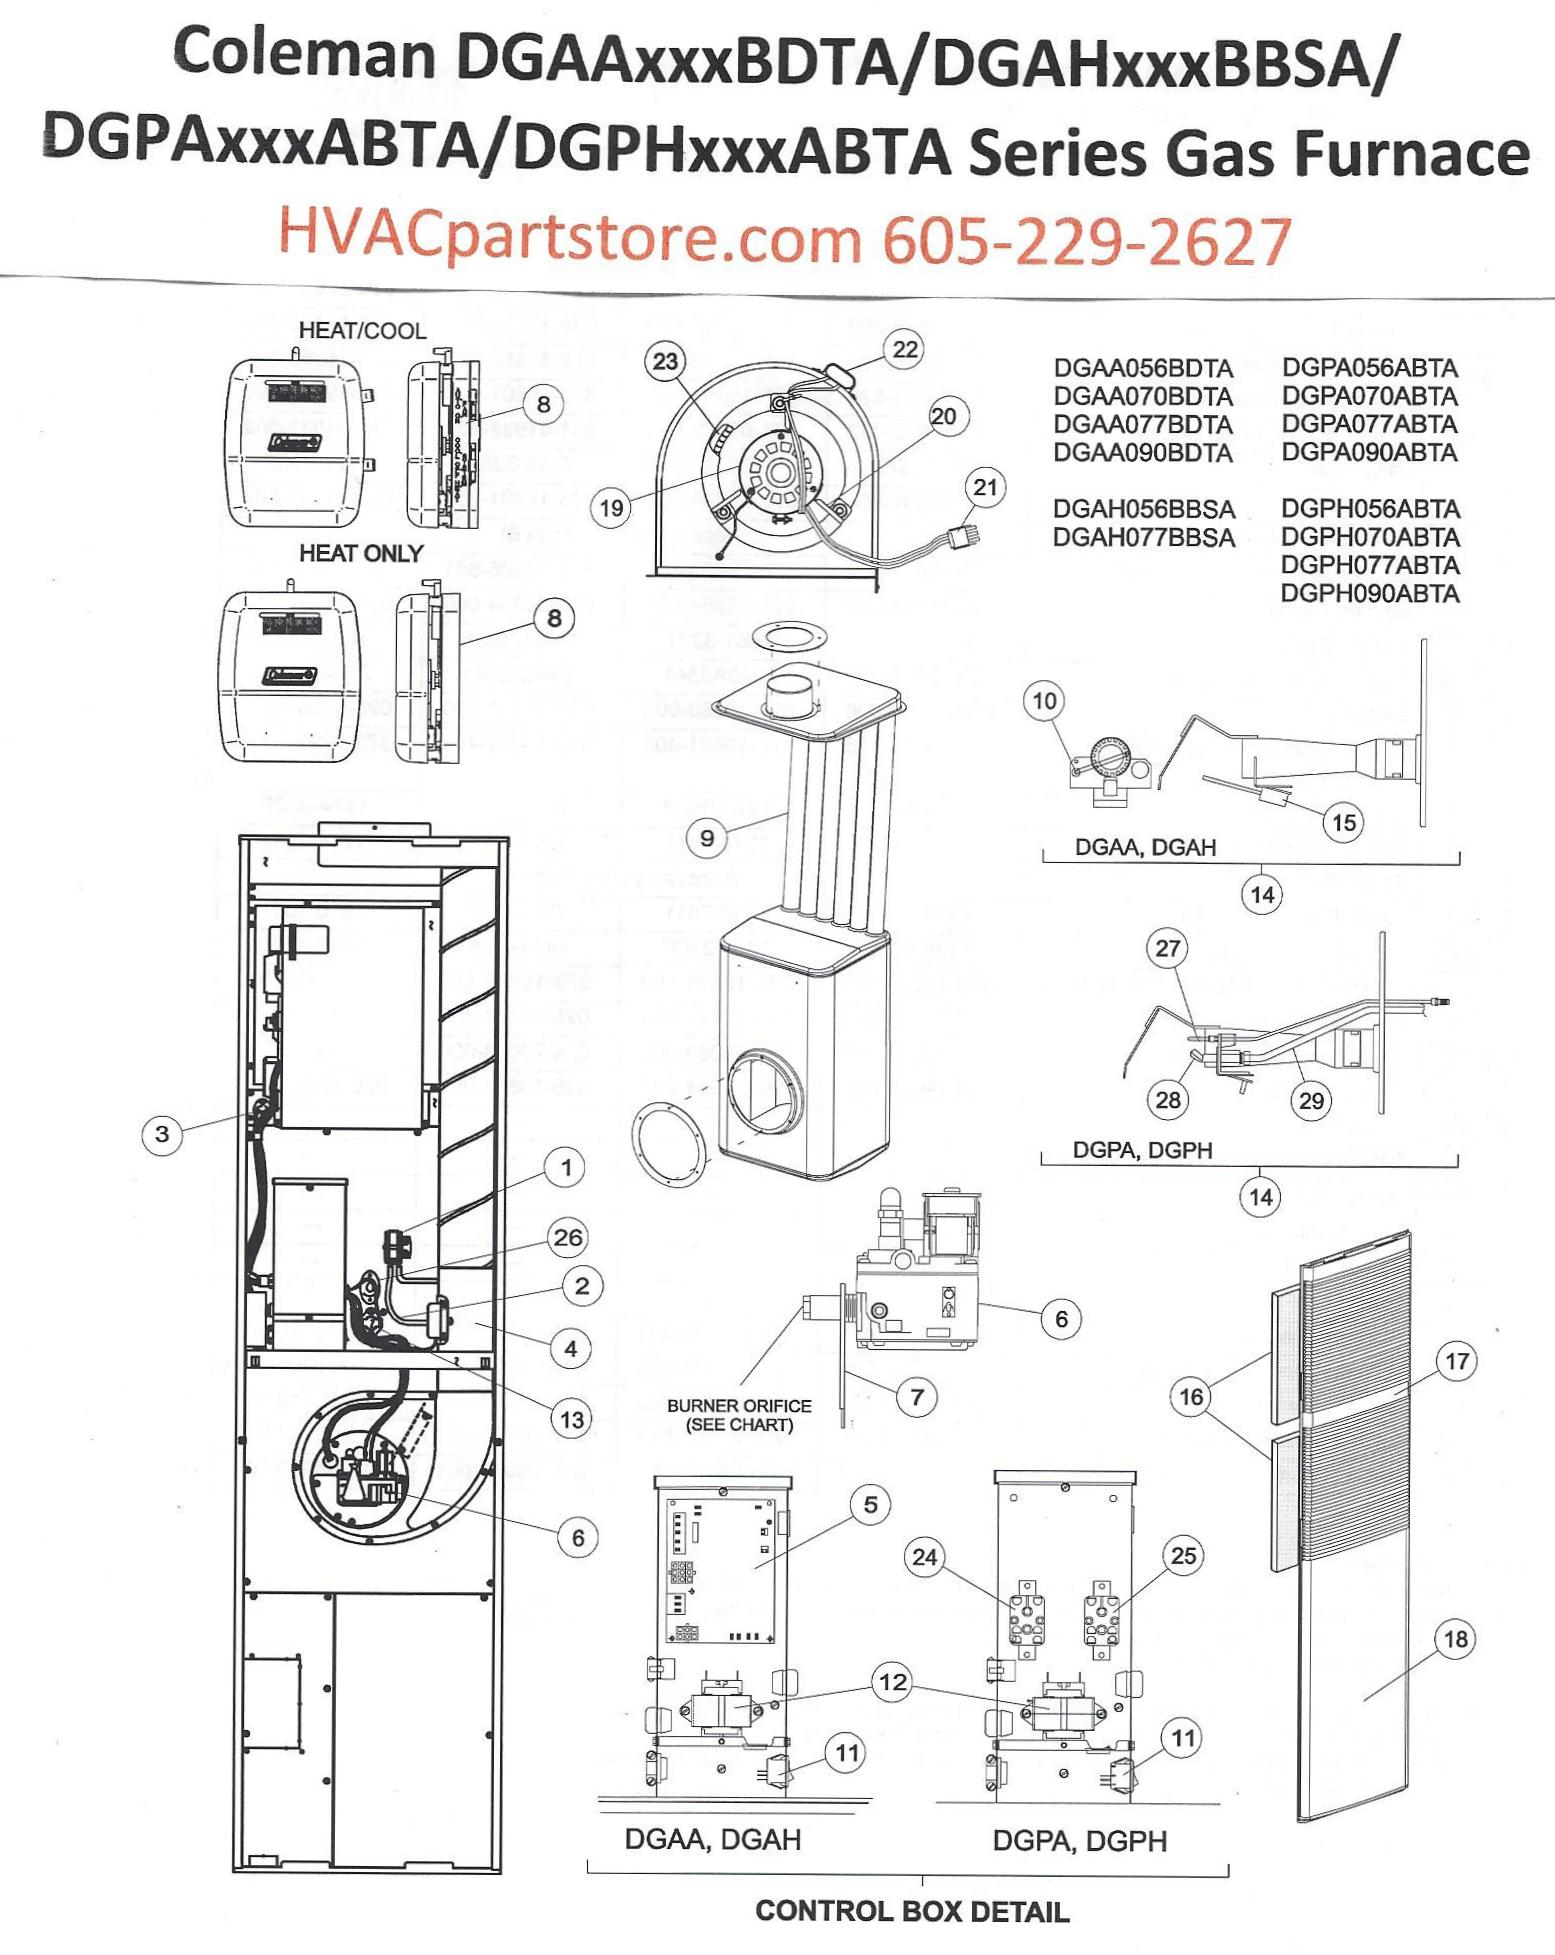 DGAAxxxBDTADiagram_8bafc3ea 82de 4e20 9605 e909ae02bd67?14560066853427379740 dgaa090bdta coleman gas furnace parts hvacpartstore coleman furnace parts diagrams at reclaimingppi.co